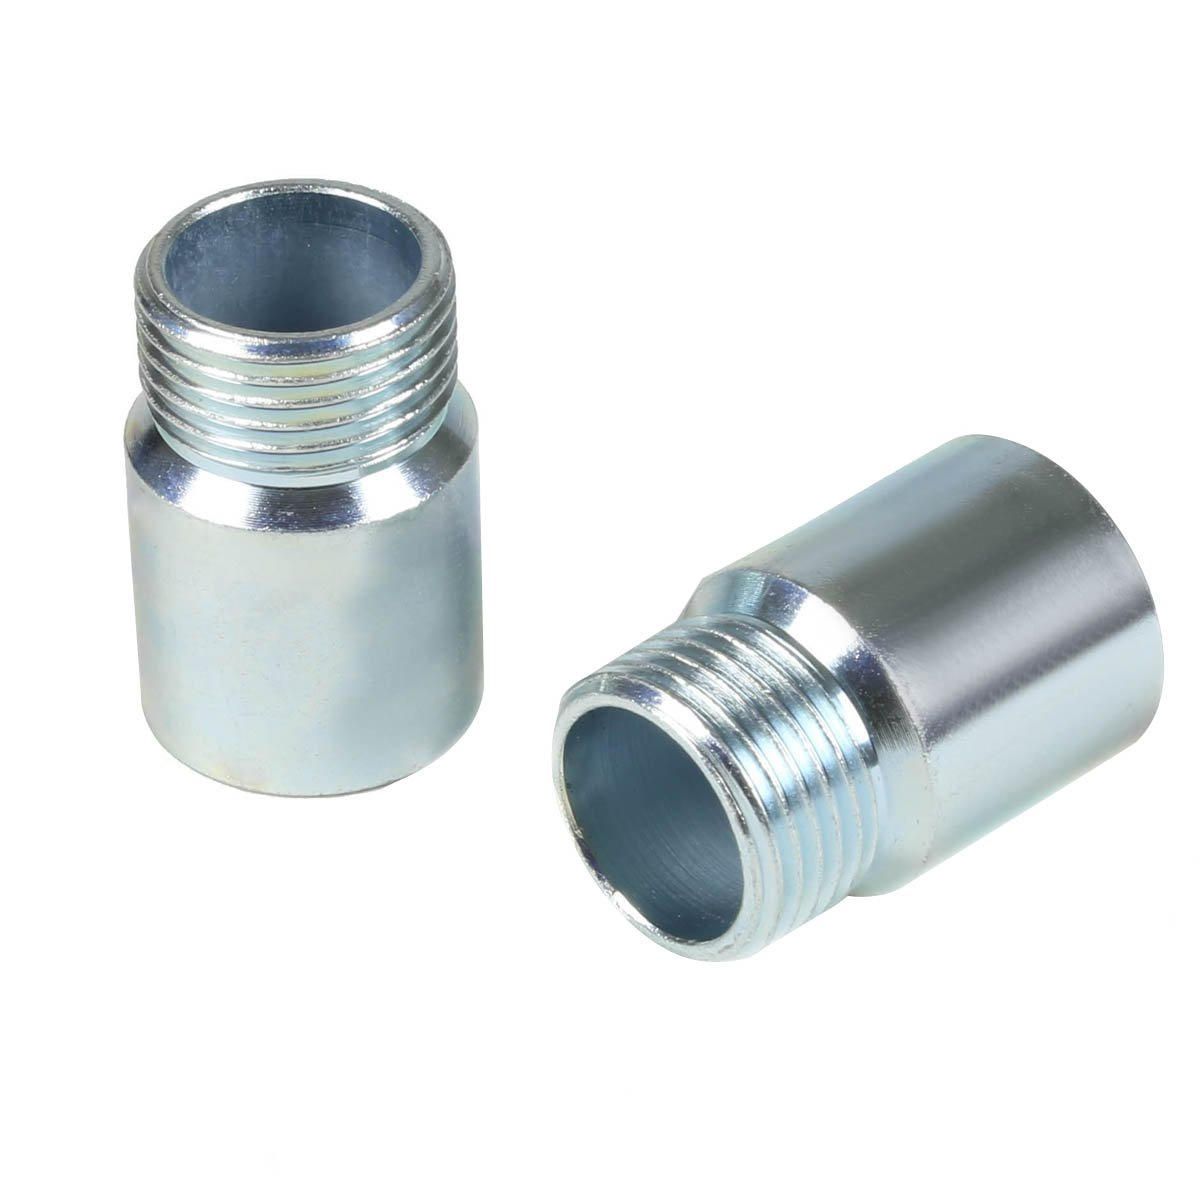 Universal O2 Sensor Spacer Adapter Extender (Pack of 2) Auto Dynasty